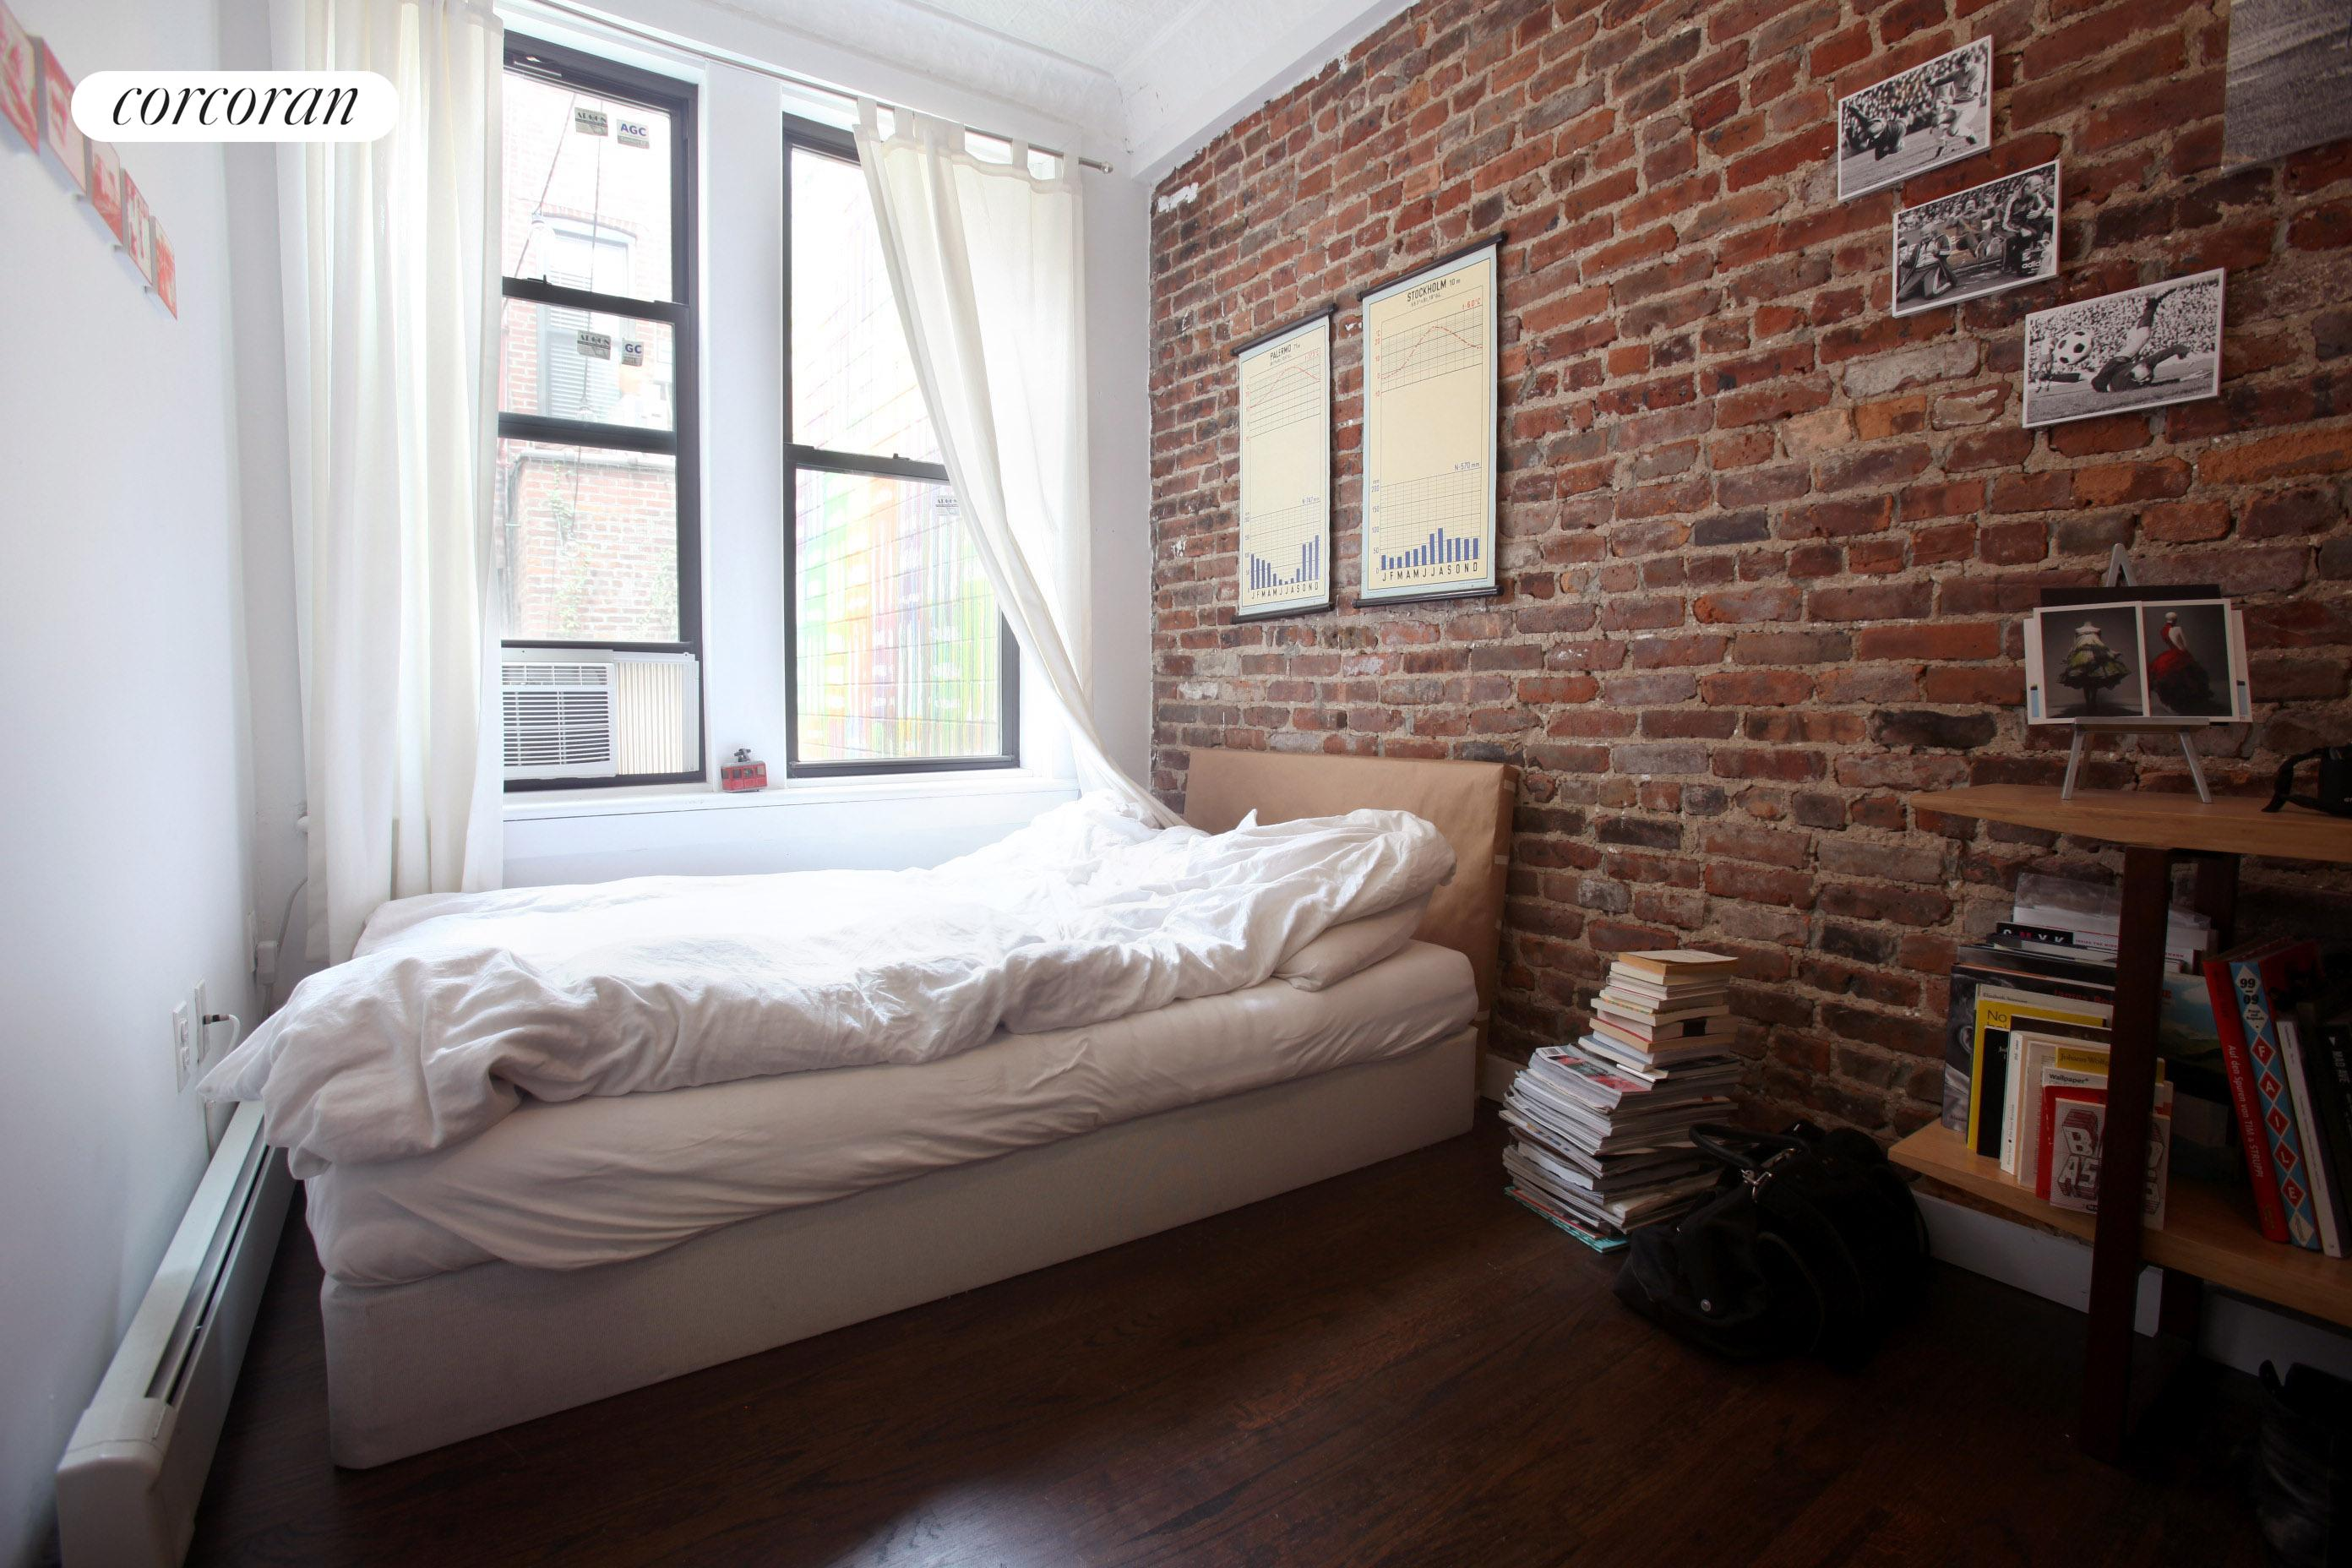 Corcoran 32 frost street apt 1 williamsburg rentals for Buy apartment brooklyn ny